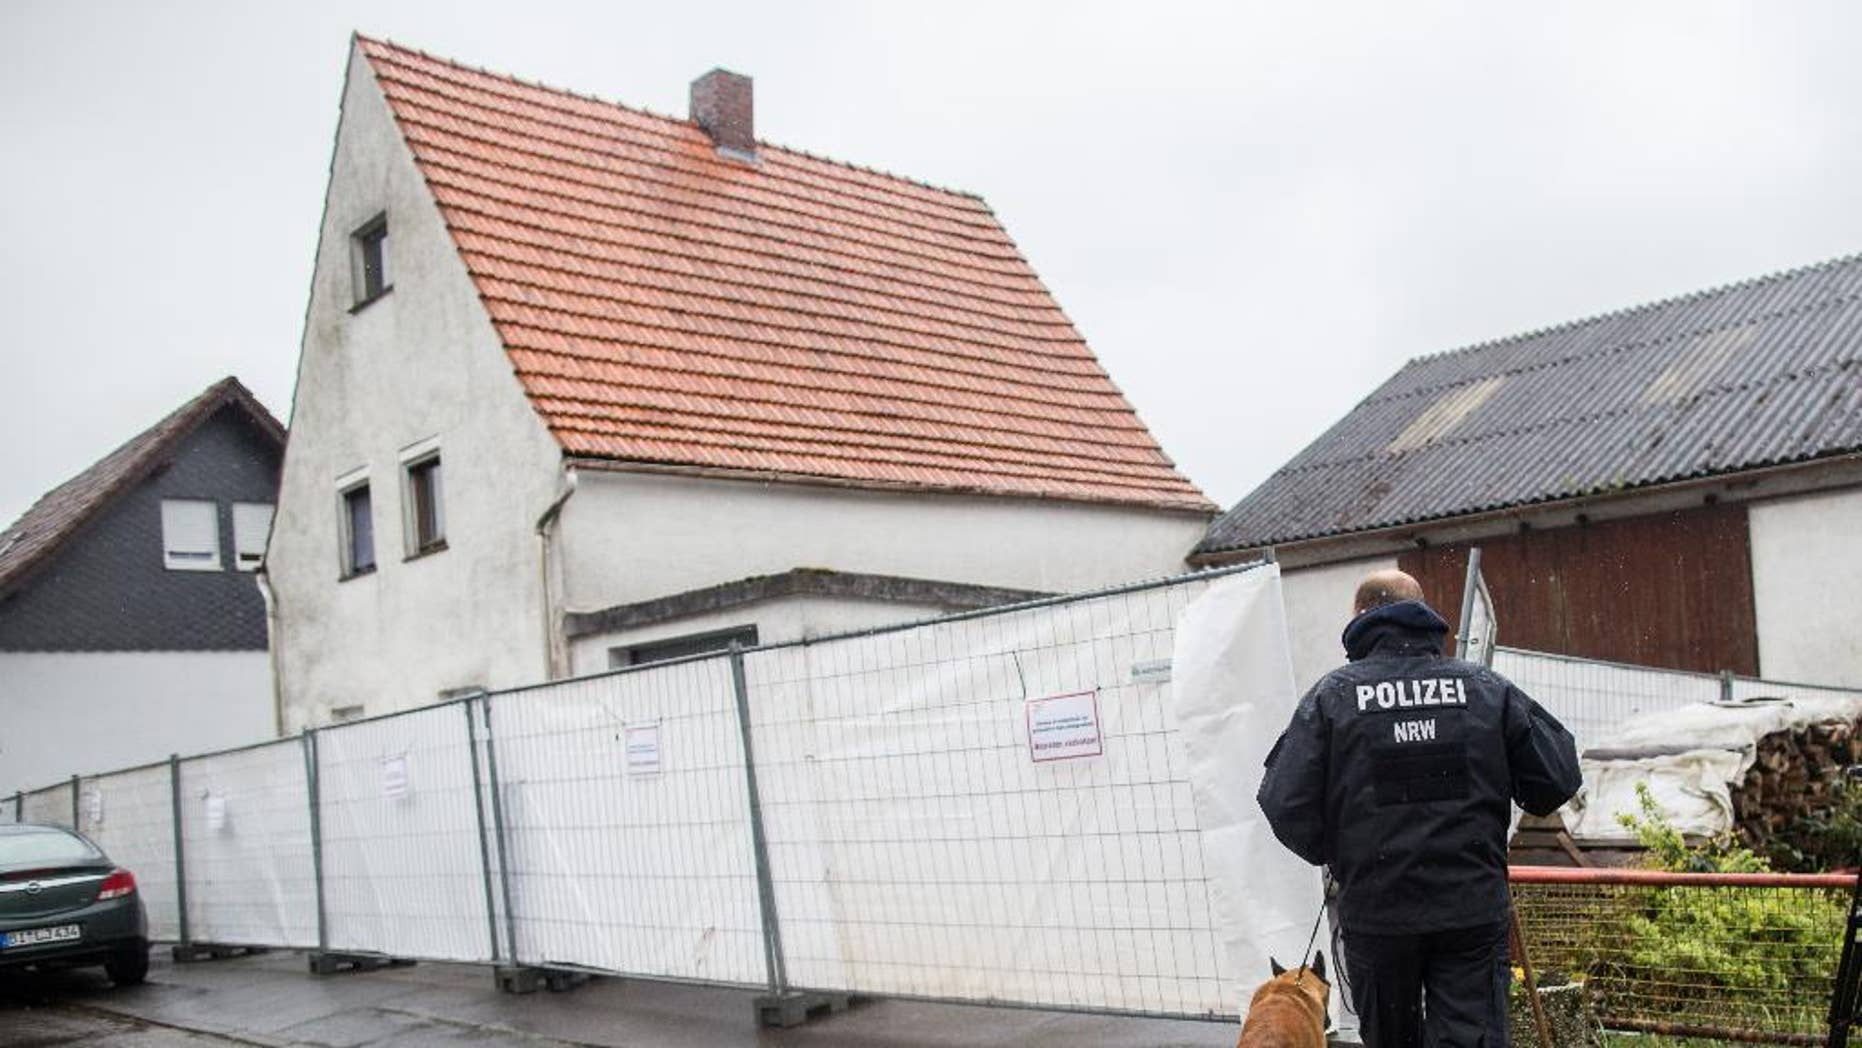 FILE - This is a Tuesday, May 3, 2016 file photo of a police officer with a dog as they pass by a house outside Hoexter, western Germany. German police say they have identified at least four women who survived abuse in the home of a couple suspected of killing two other women. Police said Monday May 9, 2016 that they have contacted the survivors, including a woman from the Berlin area who told investigators she was imprisoned for about three months in the house near the western town of Hoexter. (Marcel Kusch/dpa via AP) GERMANY OUT AUSTRIA OUT SWITZERLAND OUT